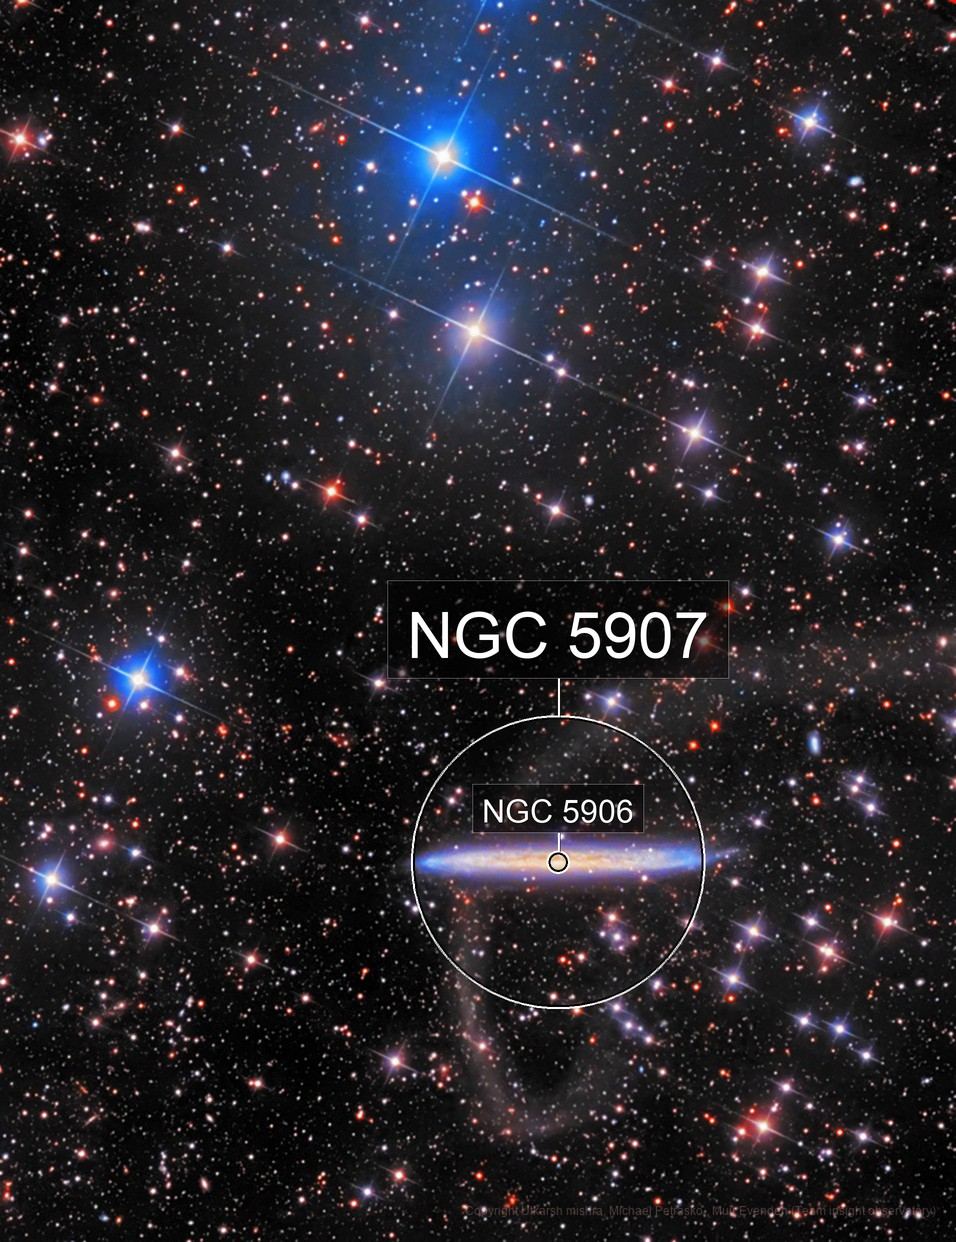 NGC5907 with Tidal Stream